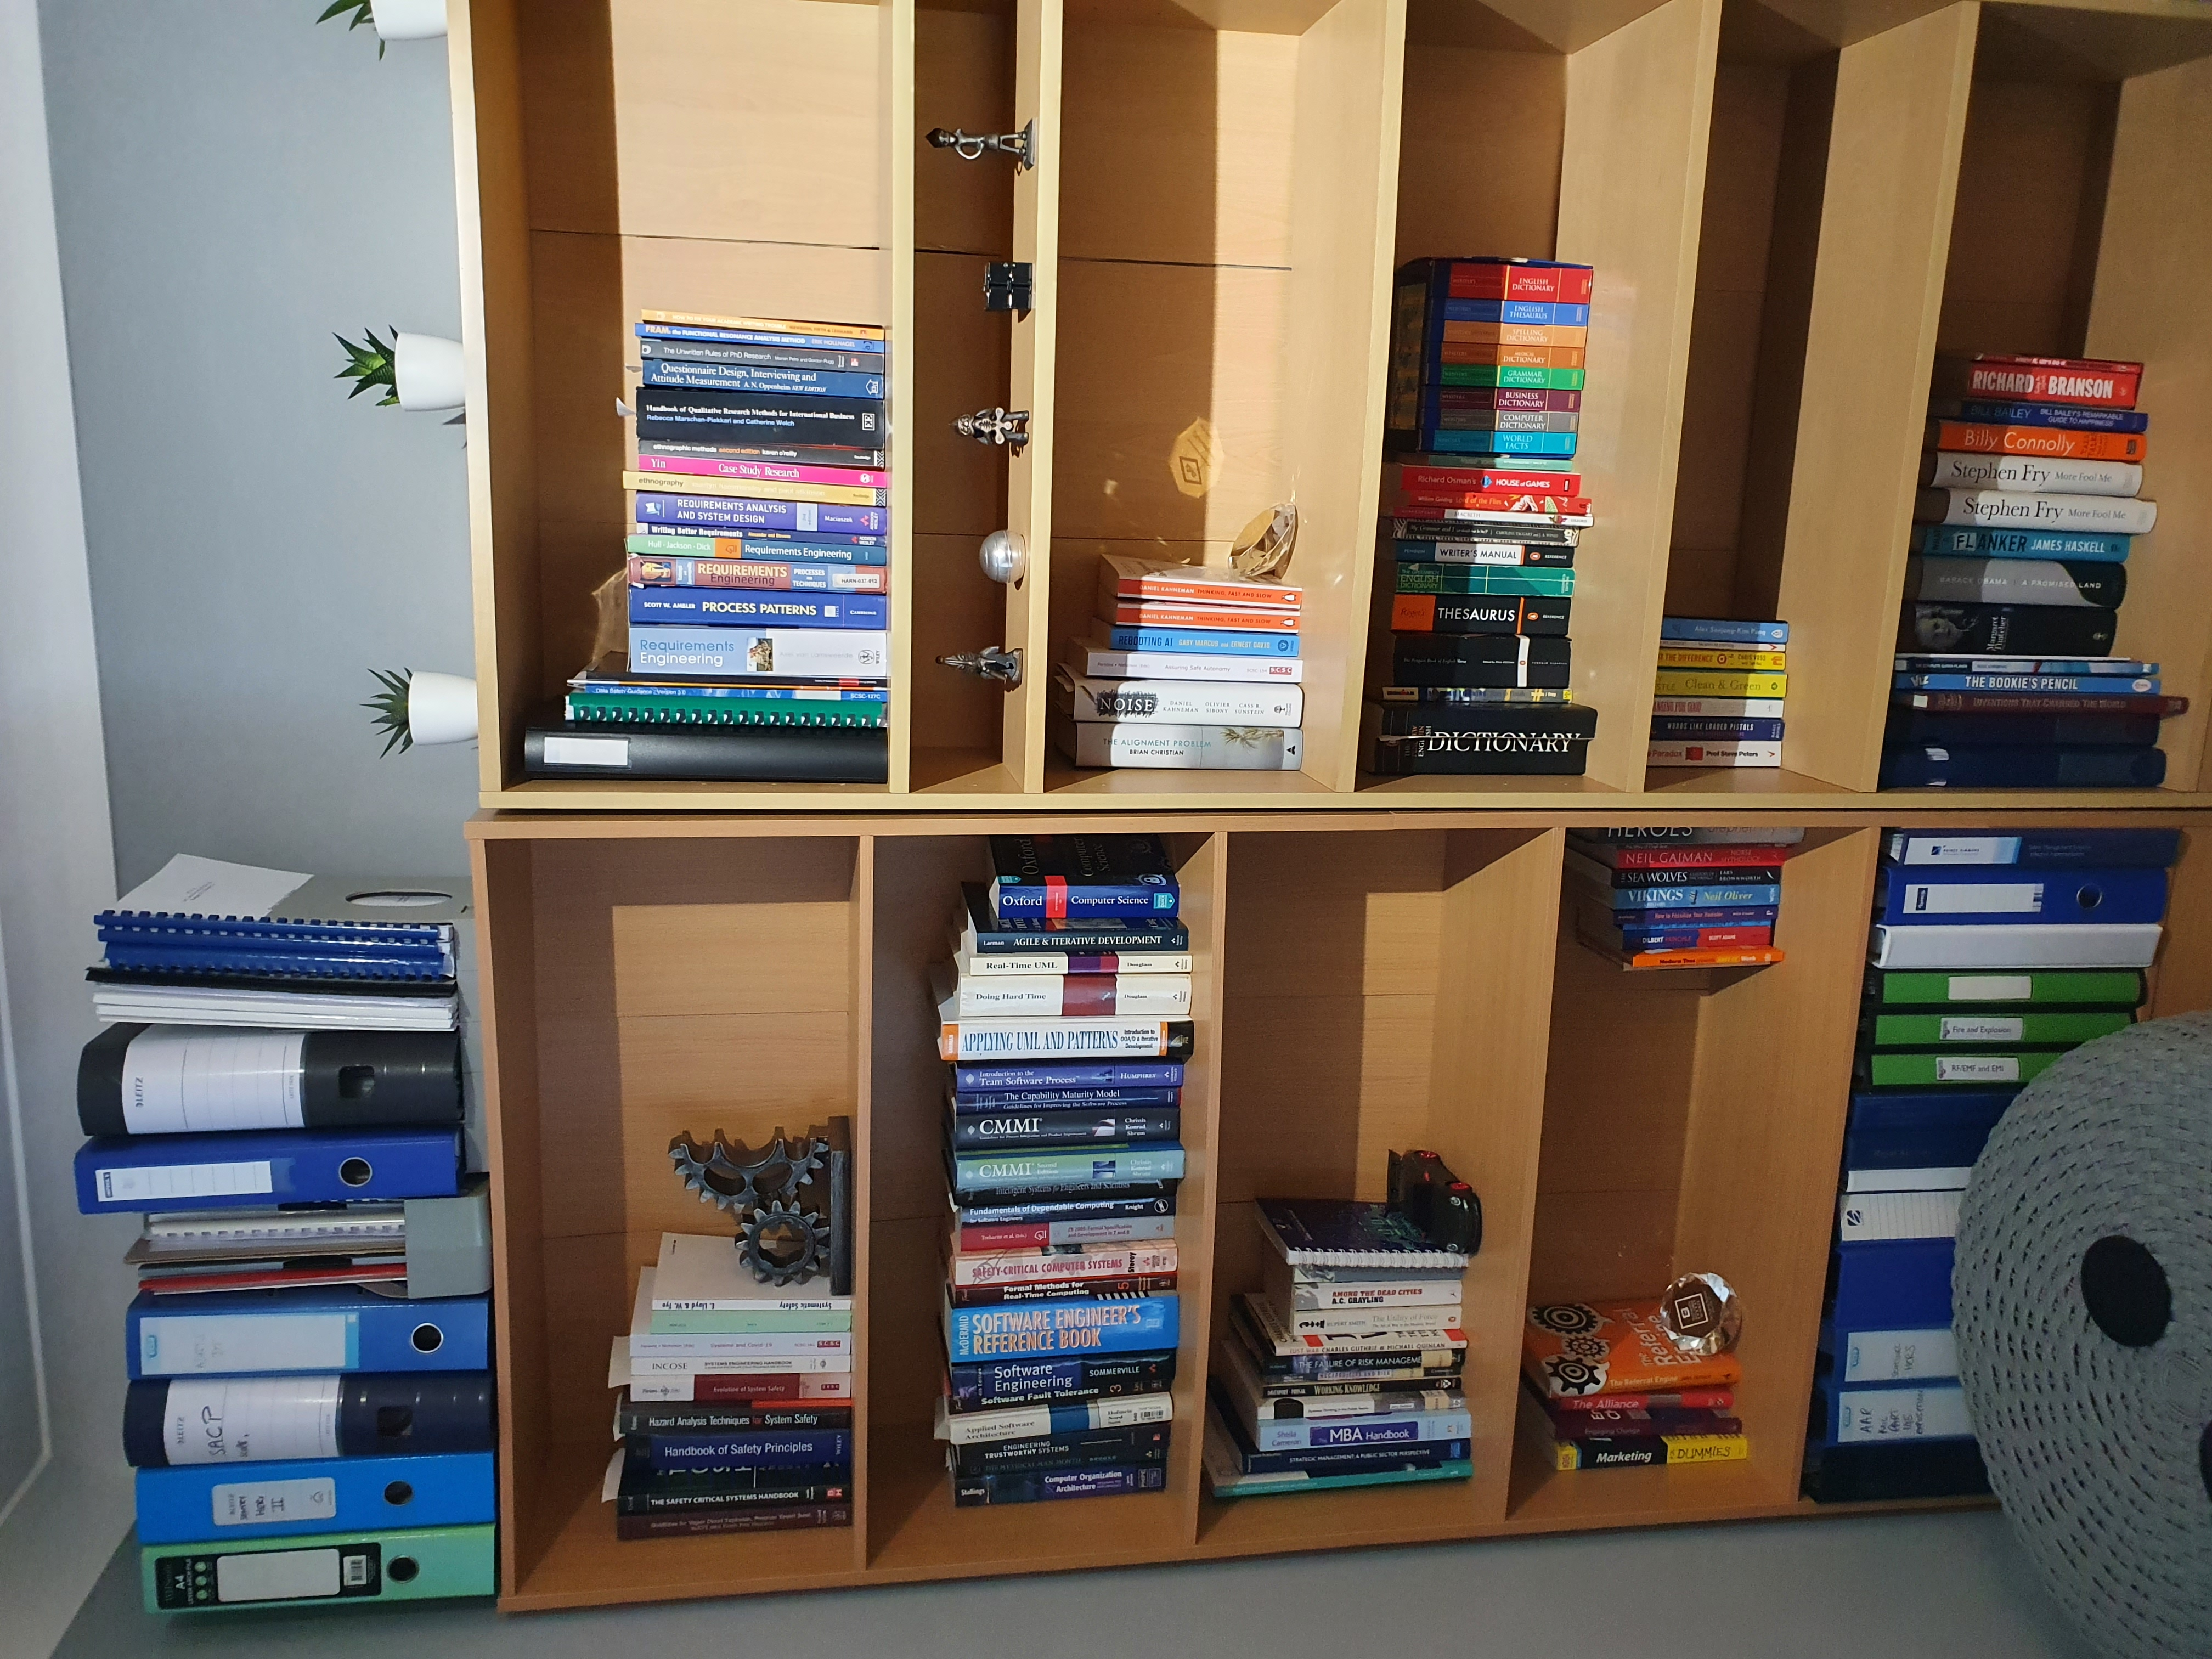 A picture showing 2 bookshelves with books on next to each other